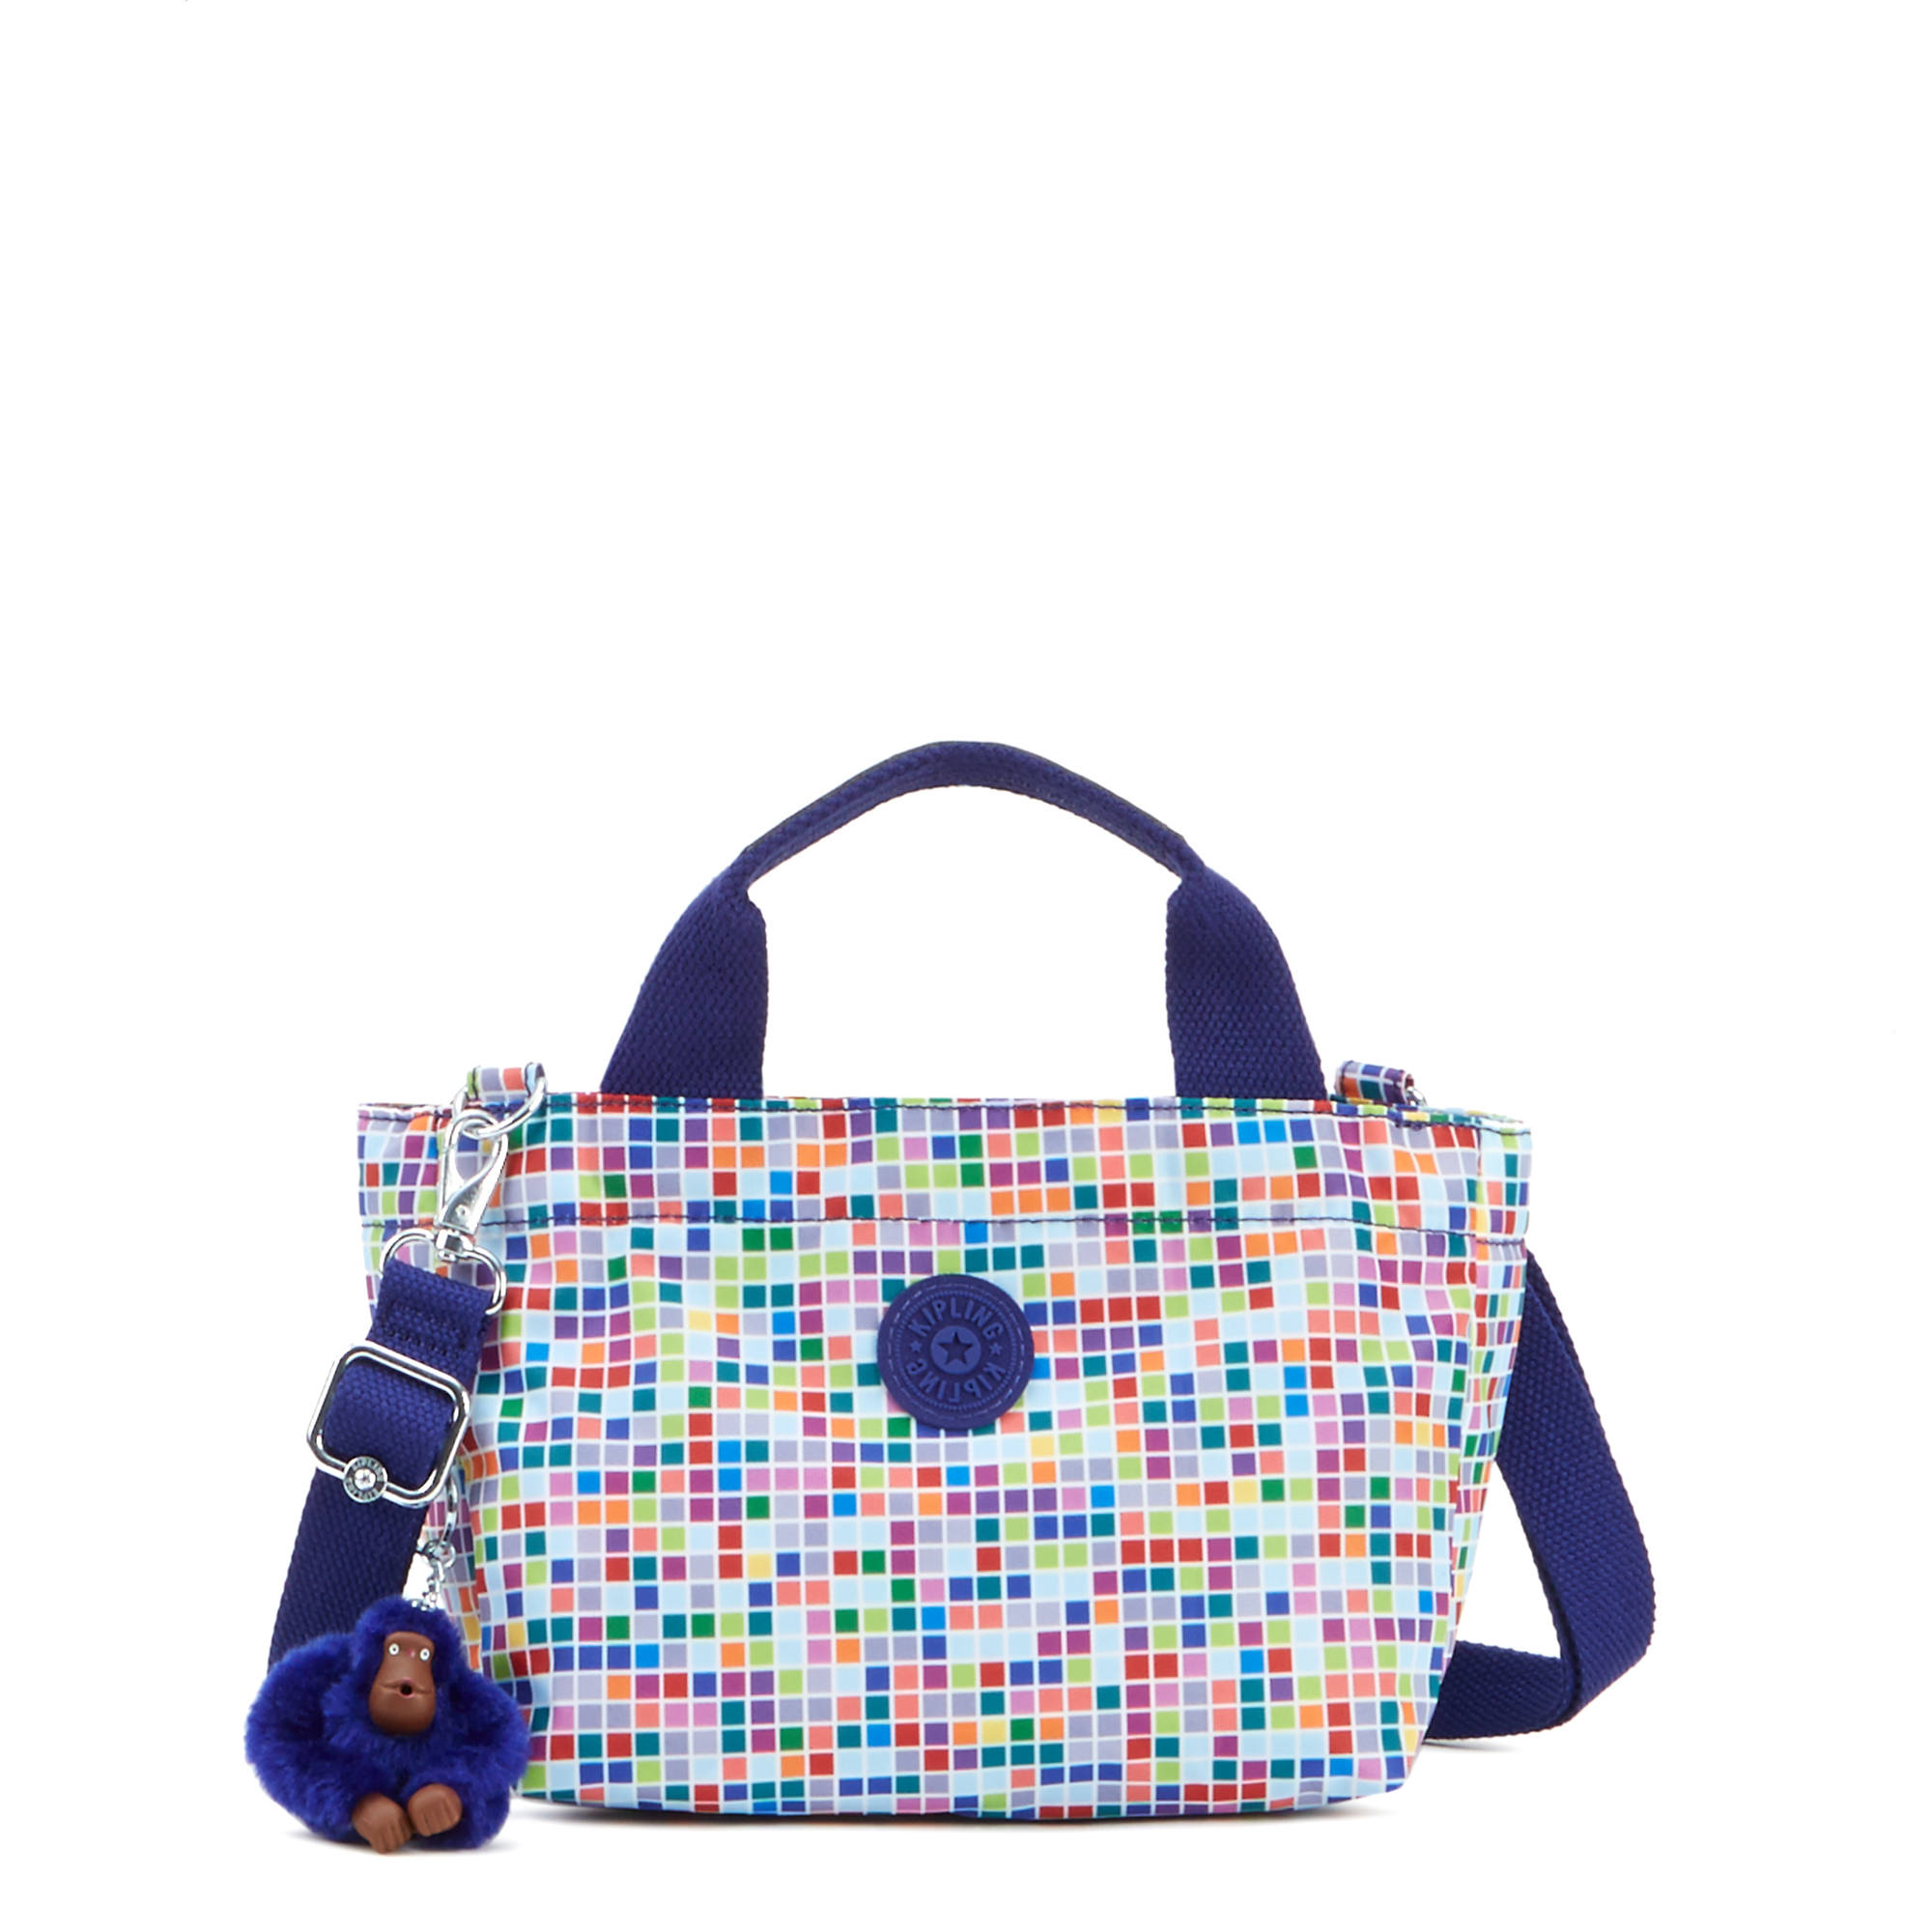 Sugar Small Handbag Dotted Bouquet Combo Large